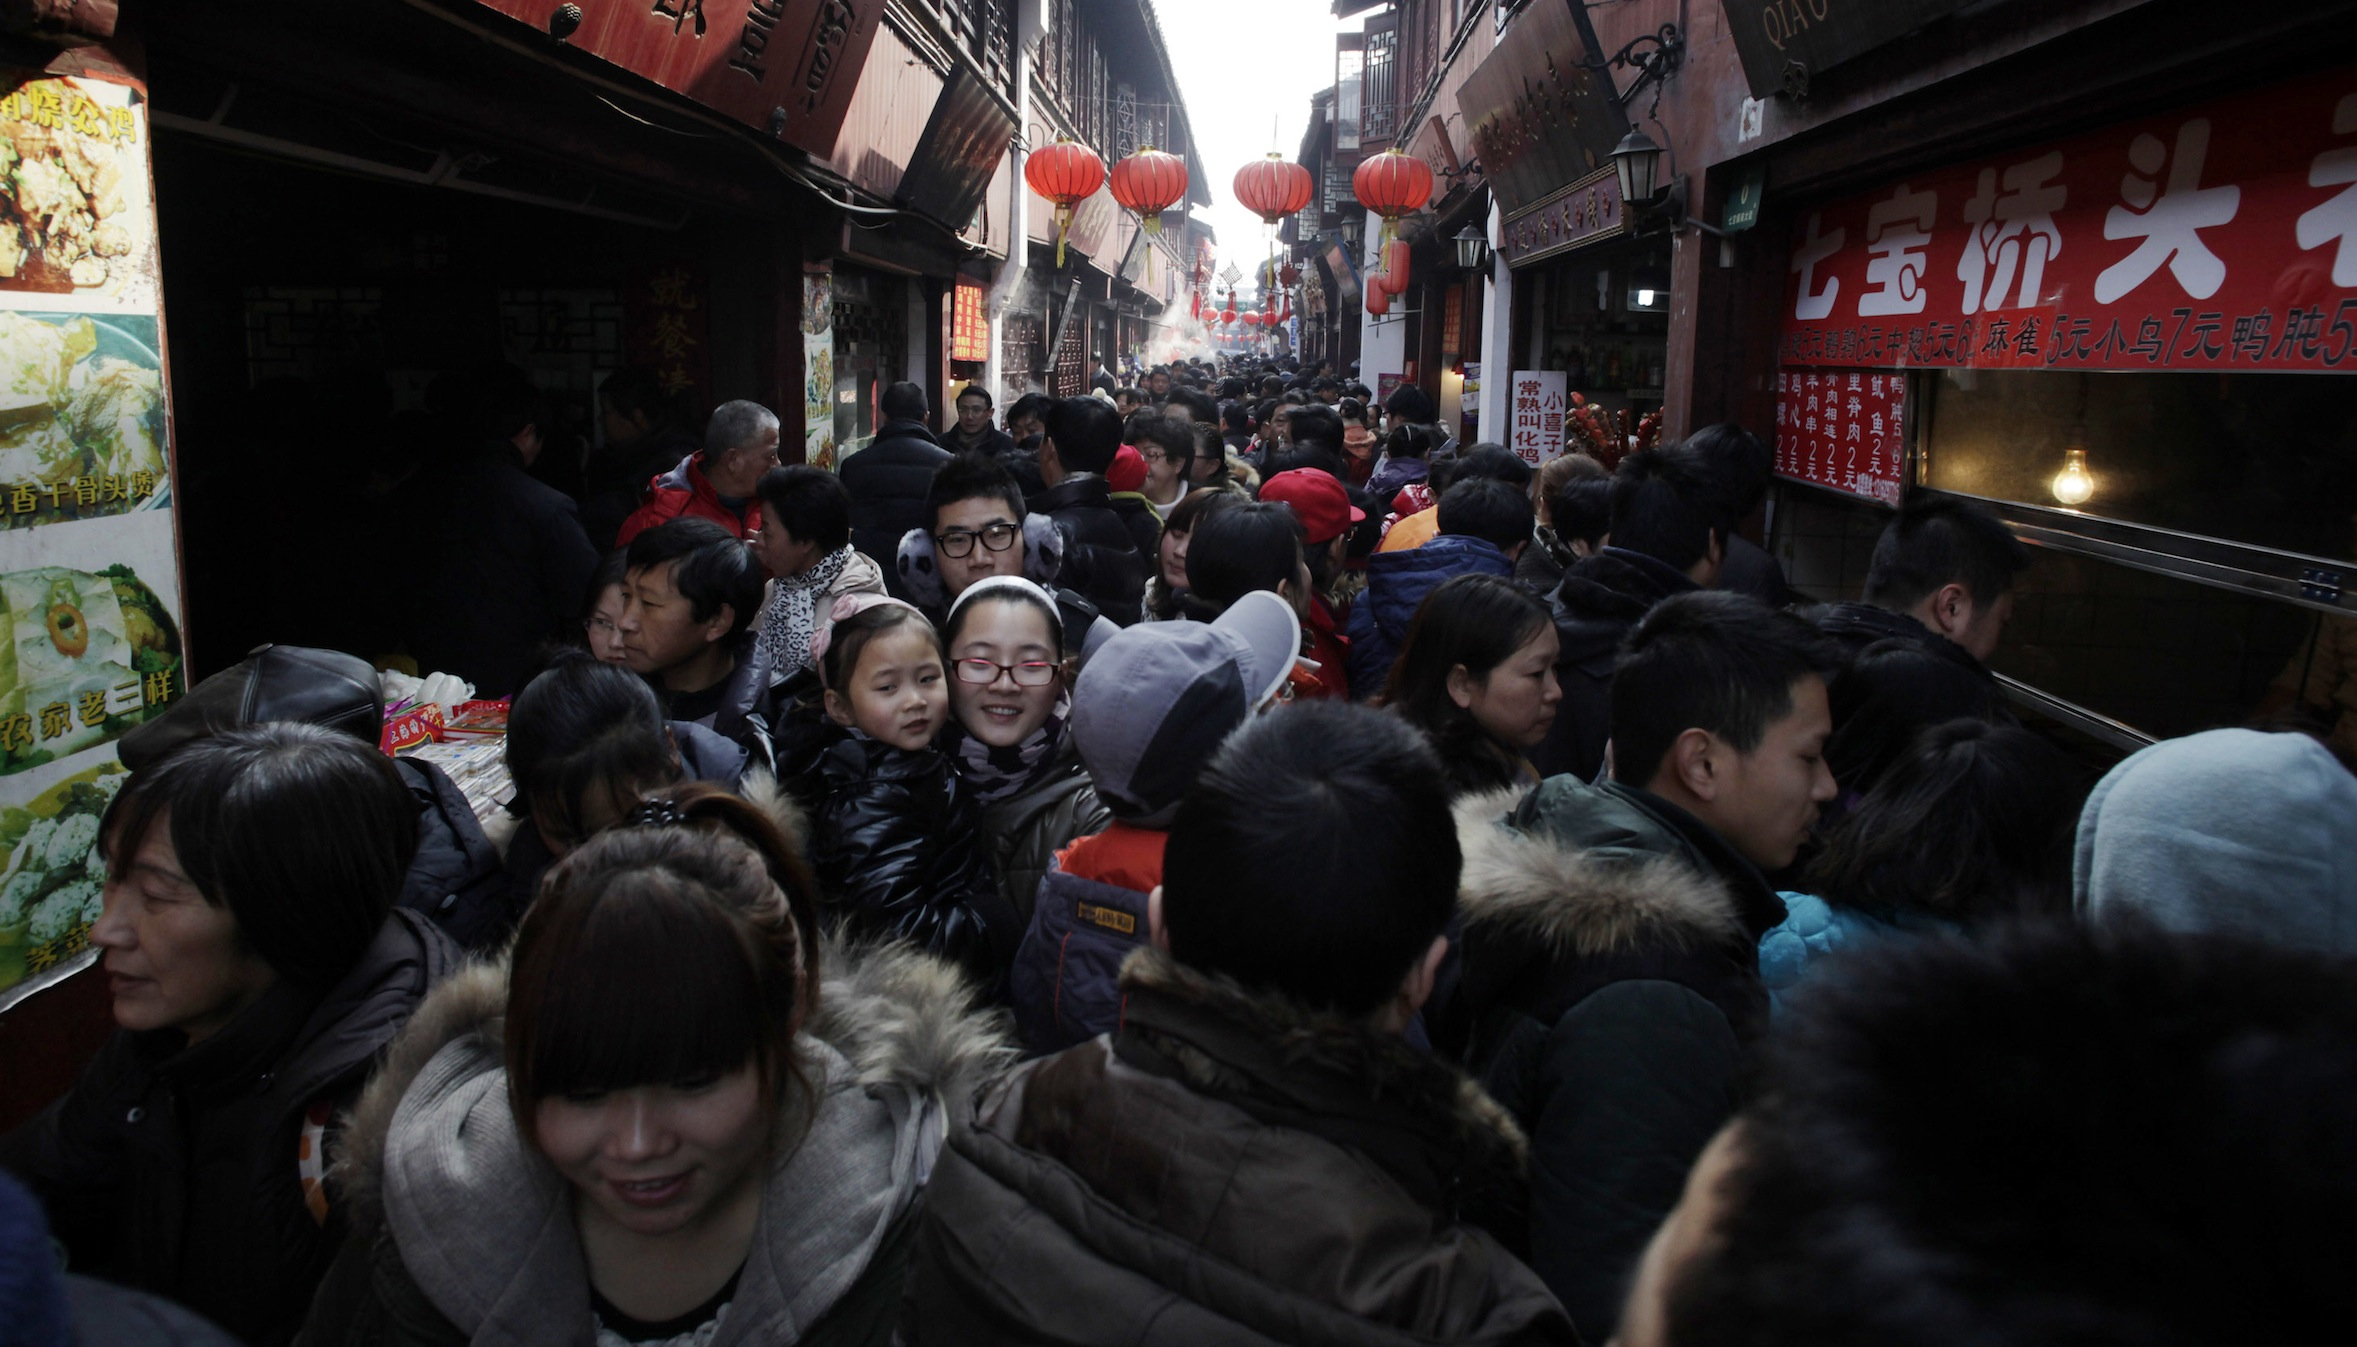 Visitors crowd a shopping street on the third day of the Chinese Lunar New Year Wednesday Jan. 25, 2012 in Shanghai, China. (AP Photo/Eugene Hoshiko)